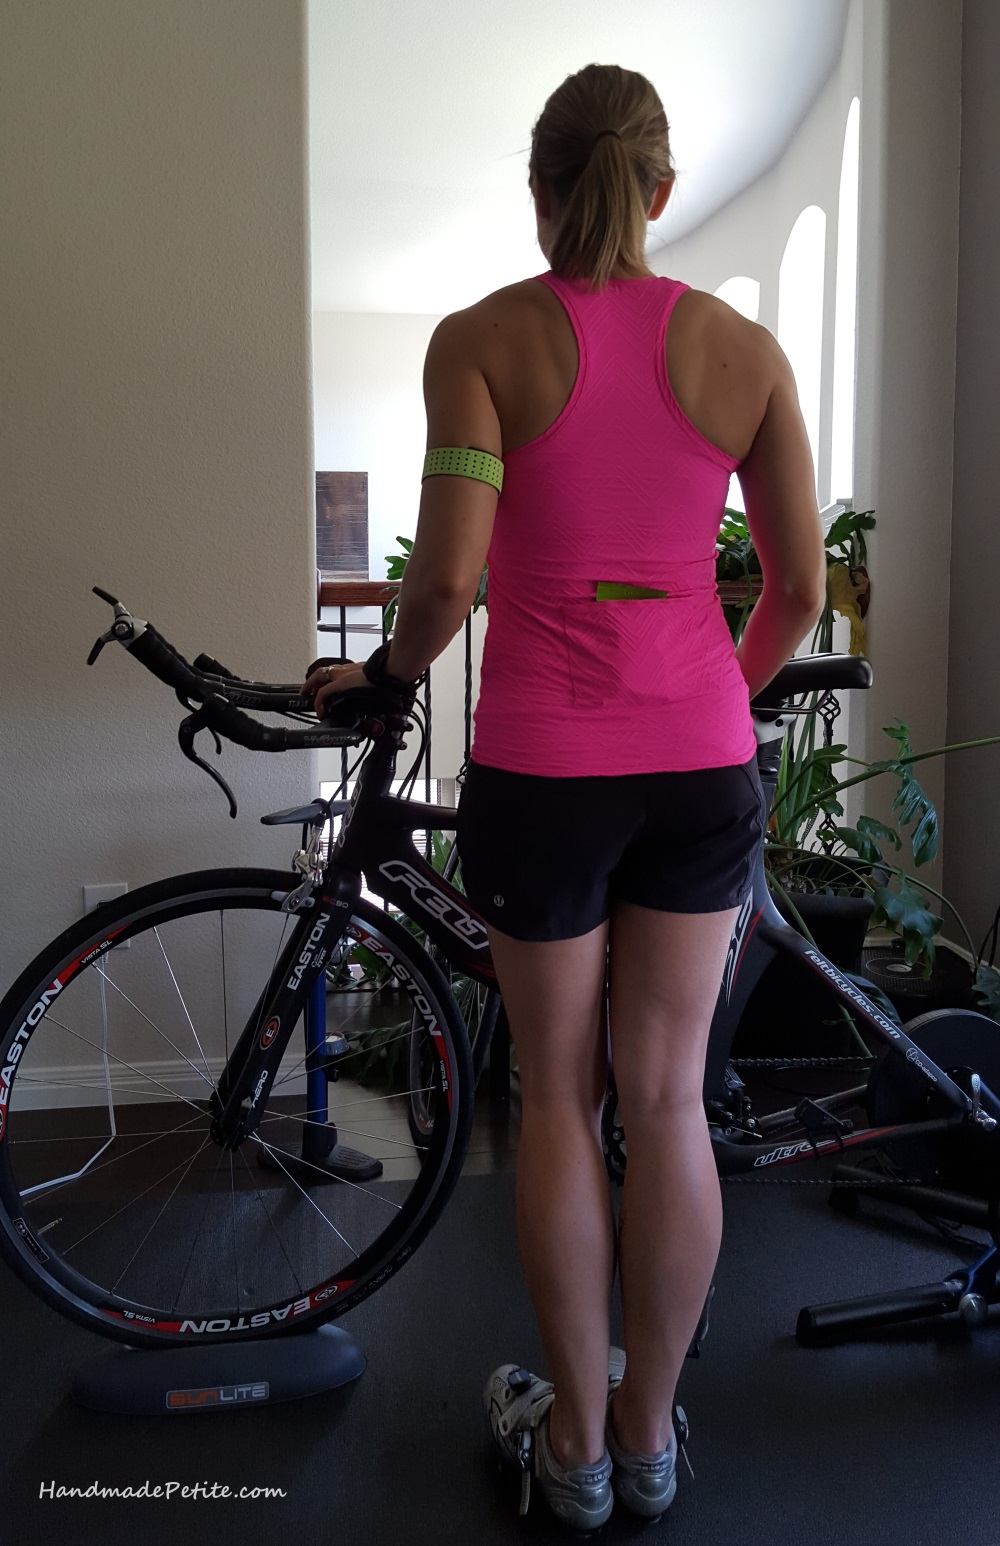 Handmade highviz pink cycling top with back pocket